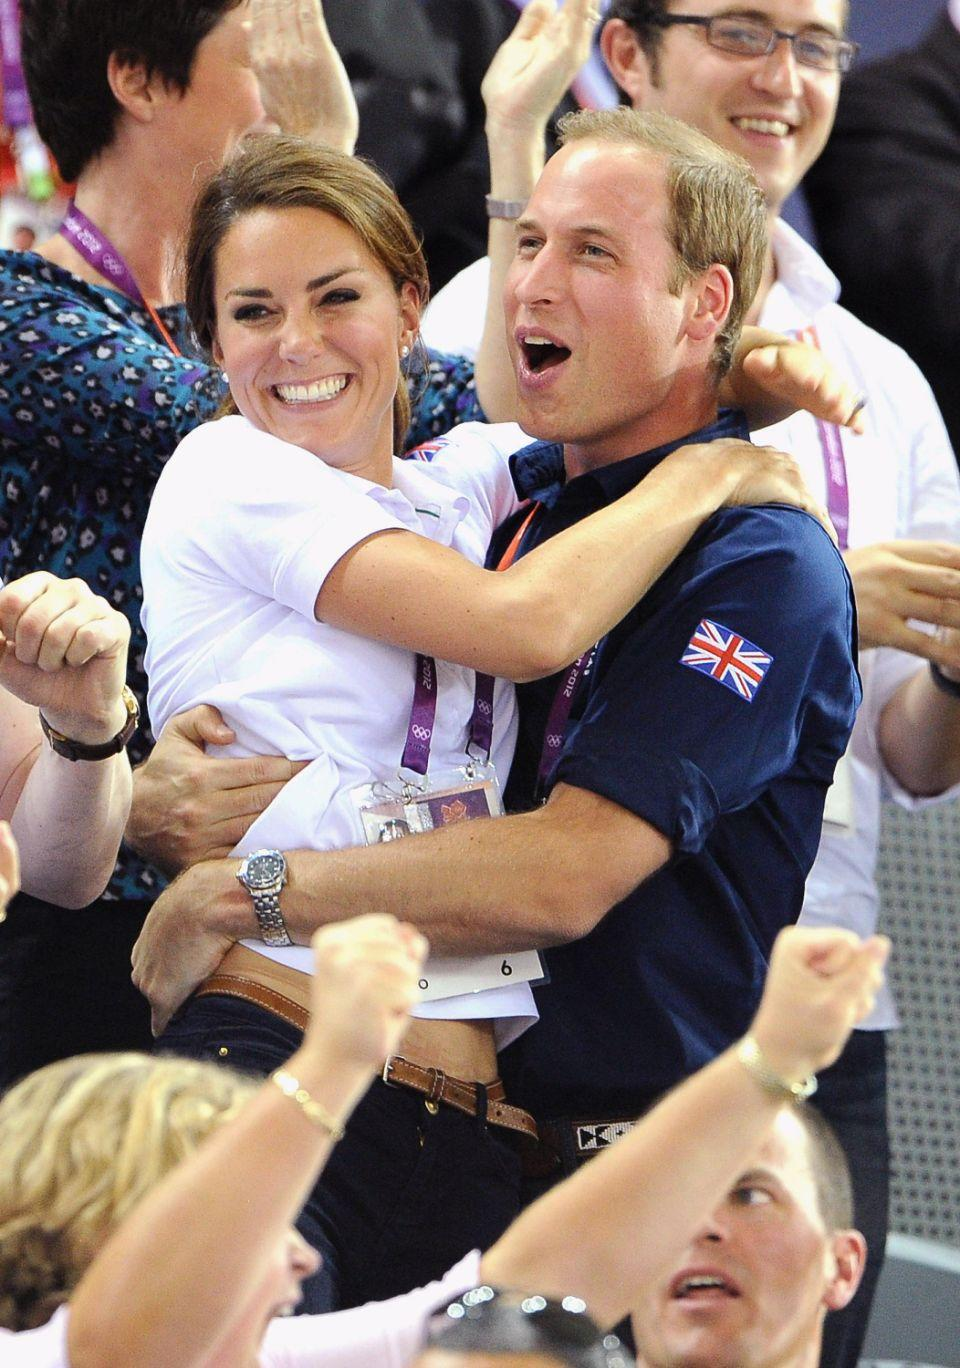 She reckons Kate Middleton and Prince William are having a baby girl. Photo: Getty Images